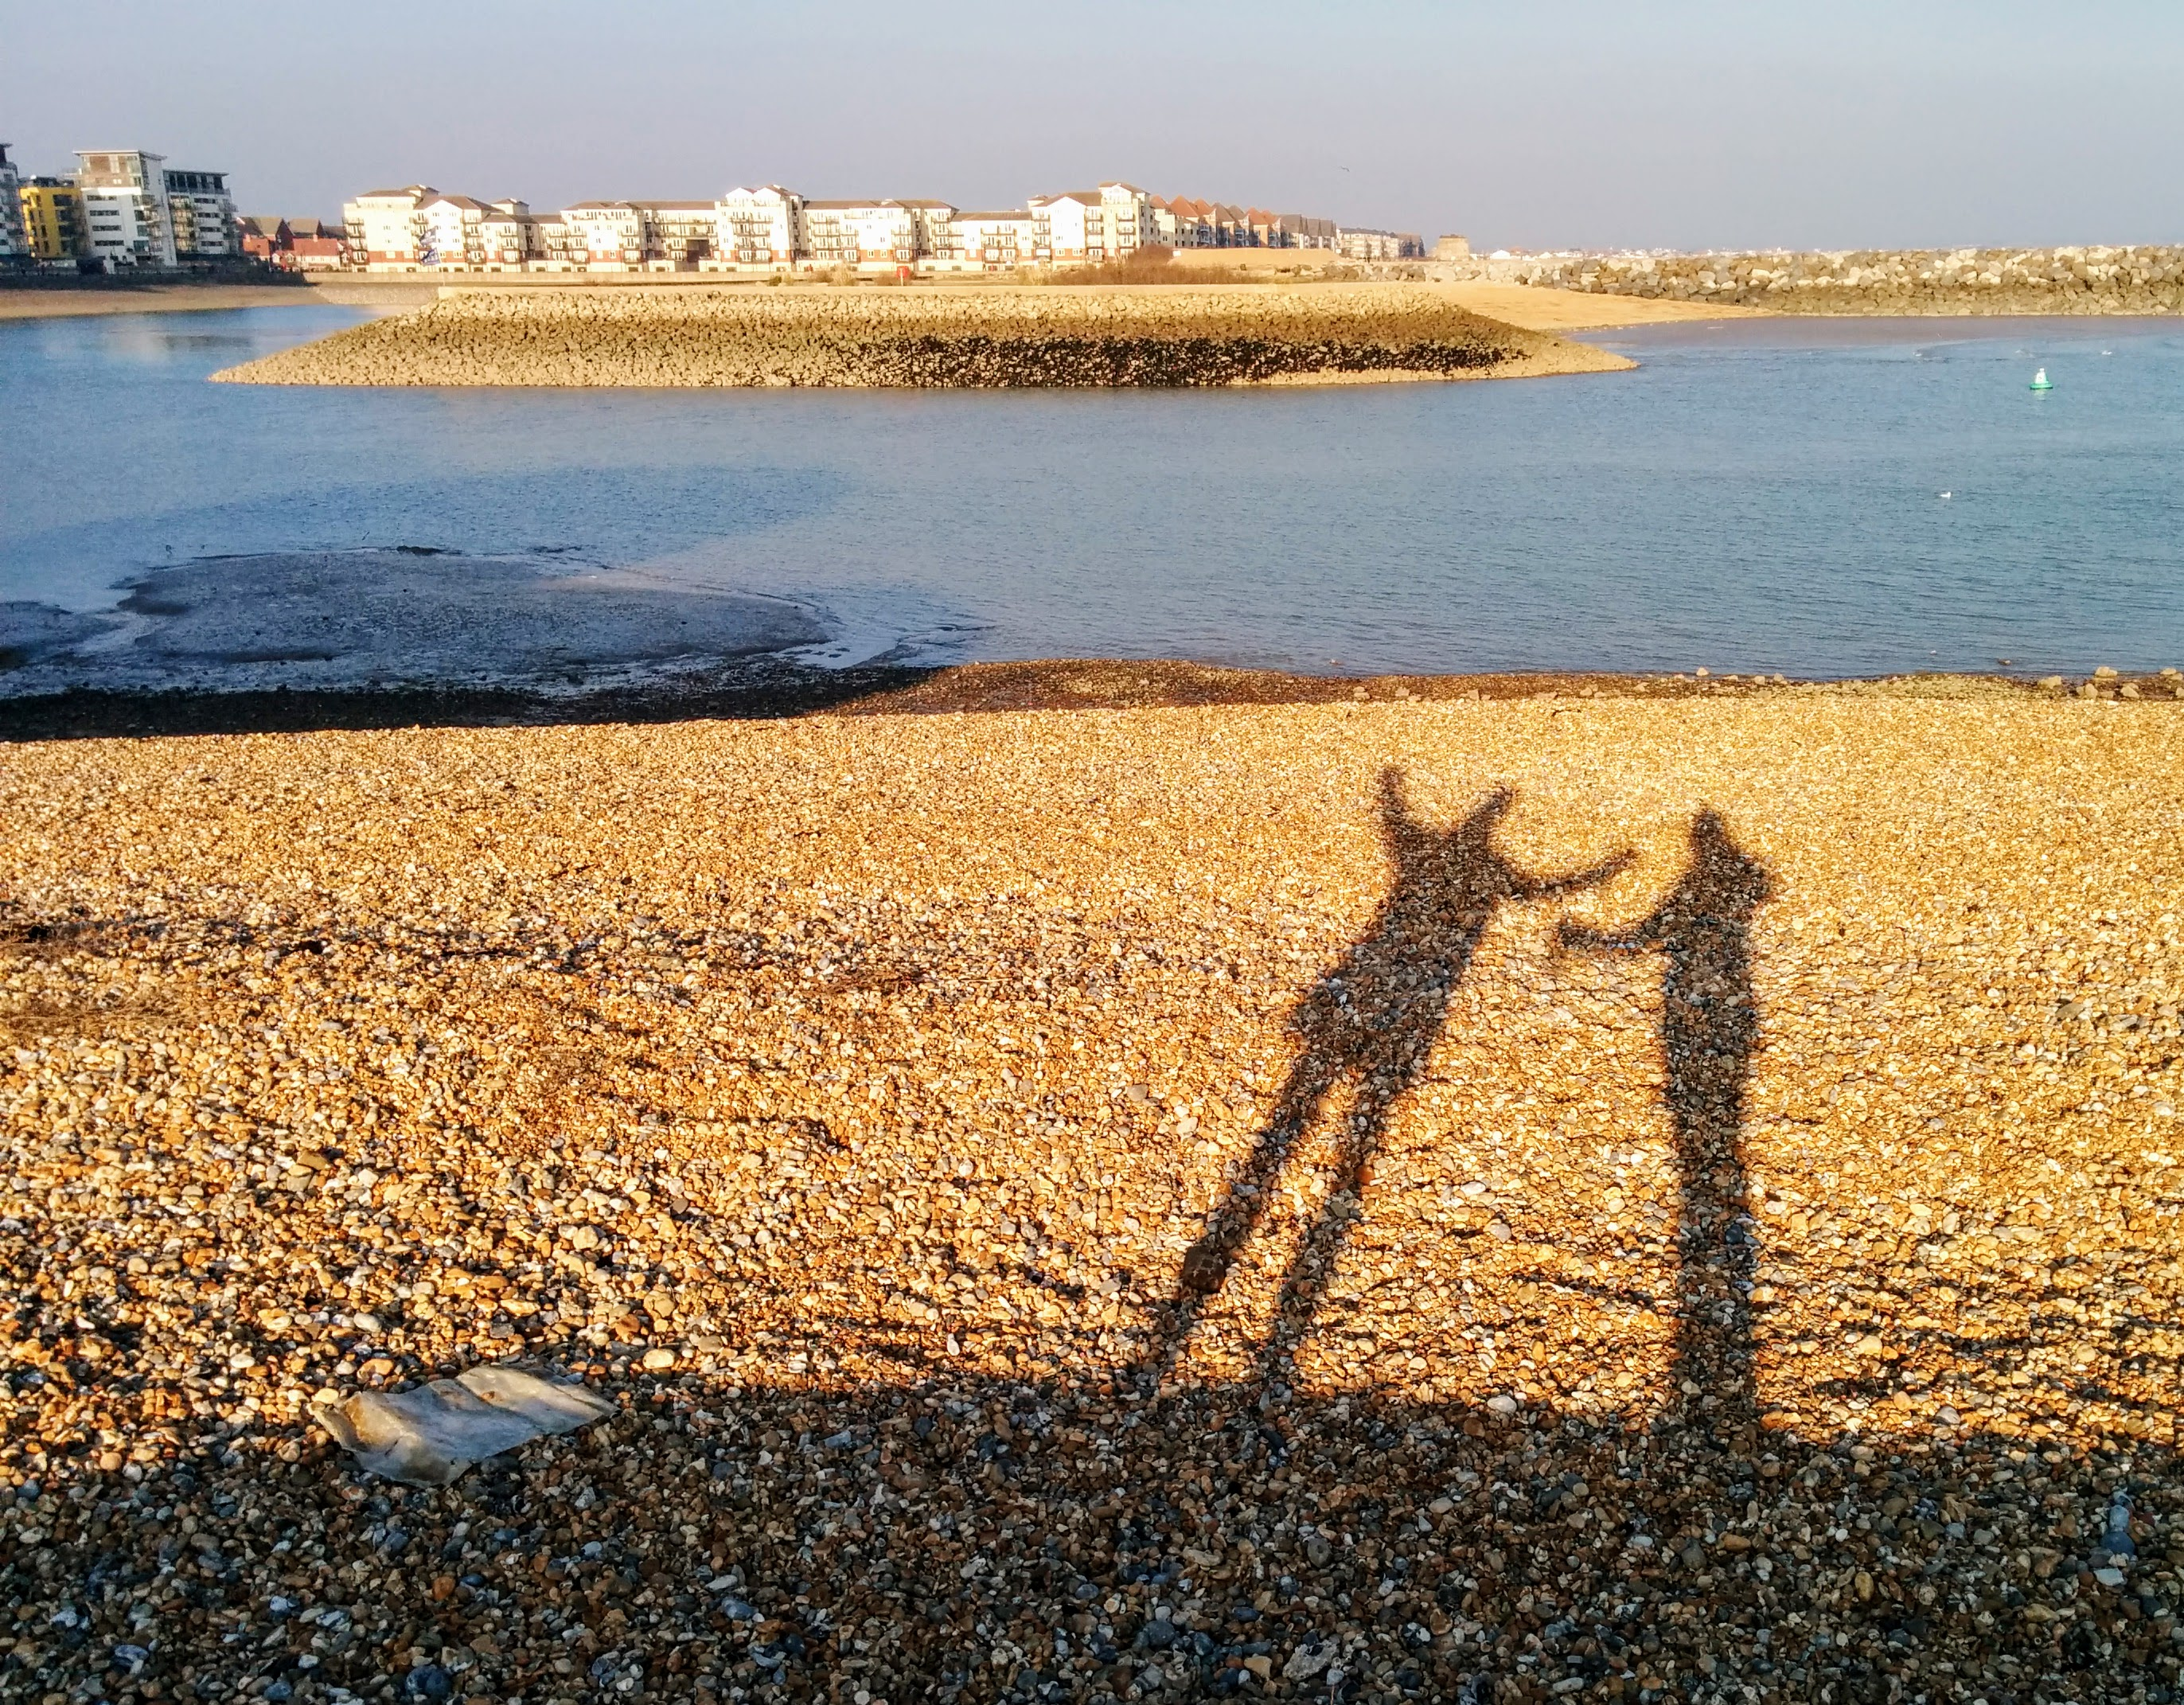 Shadow play at Sovereign Harbour